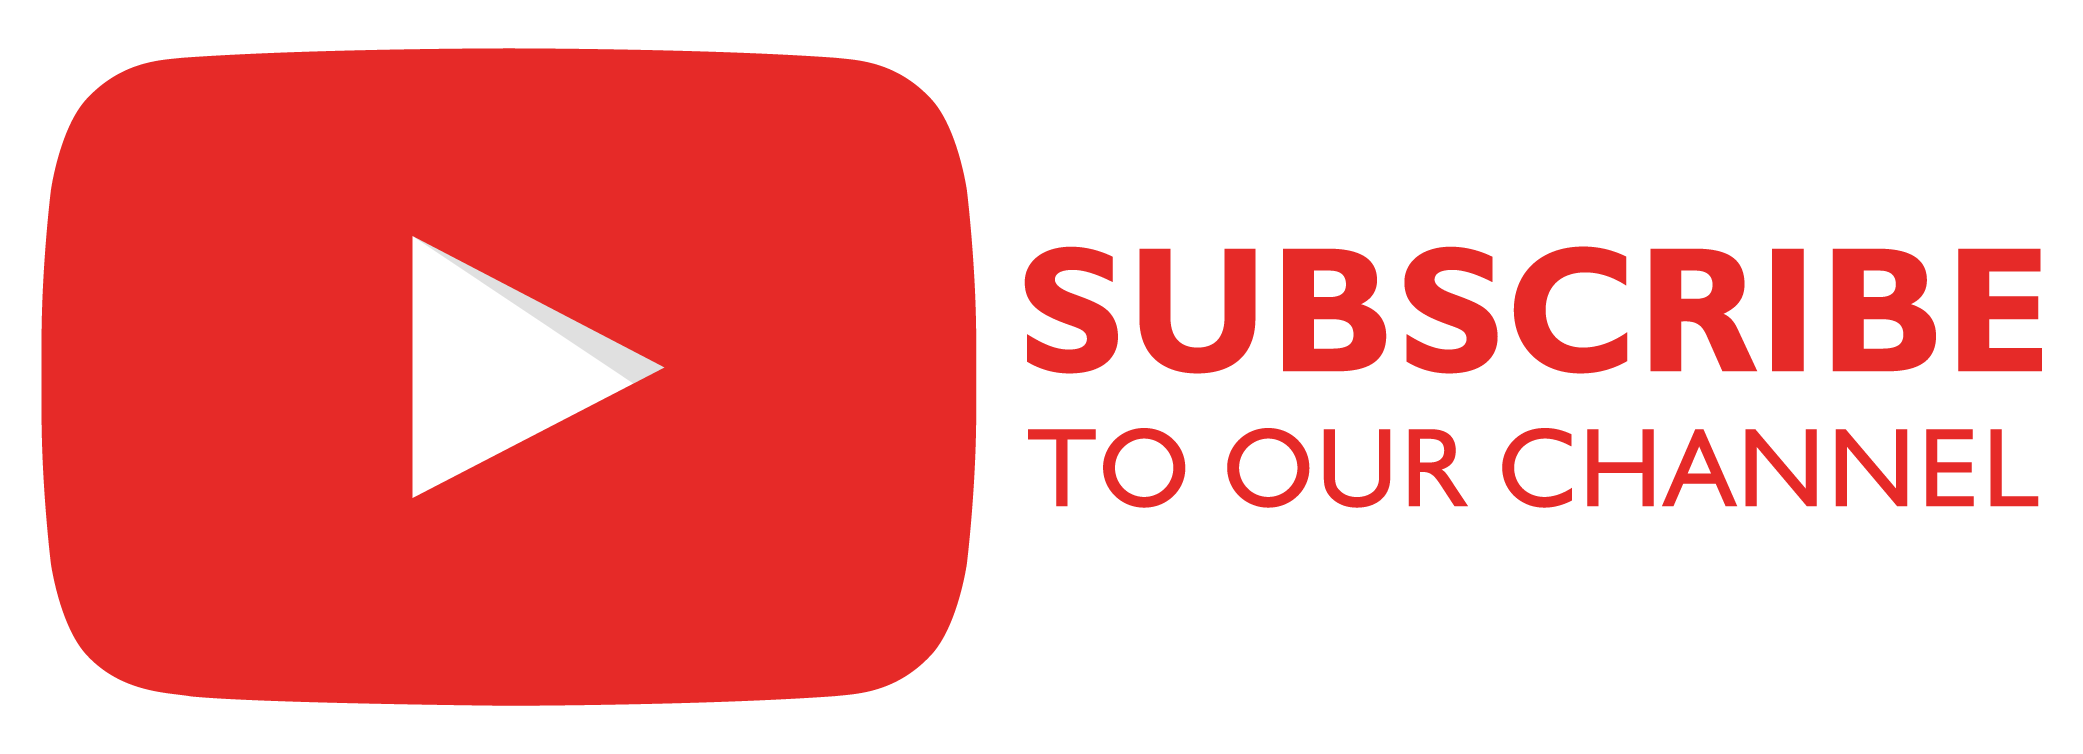 Subscribe Active Luton Youtube